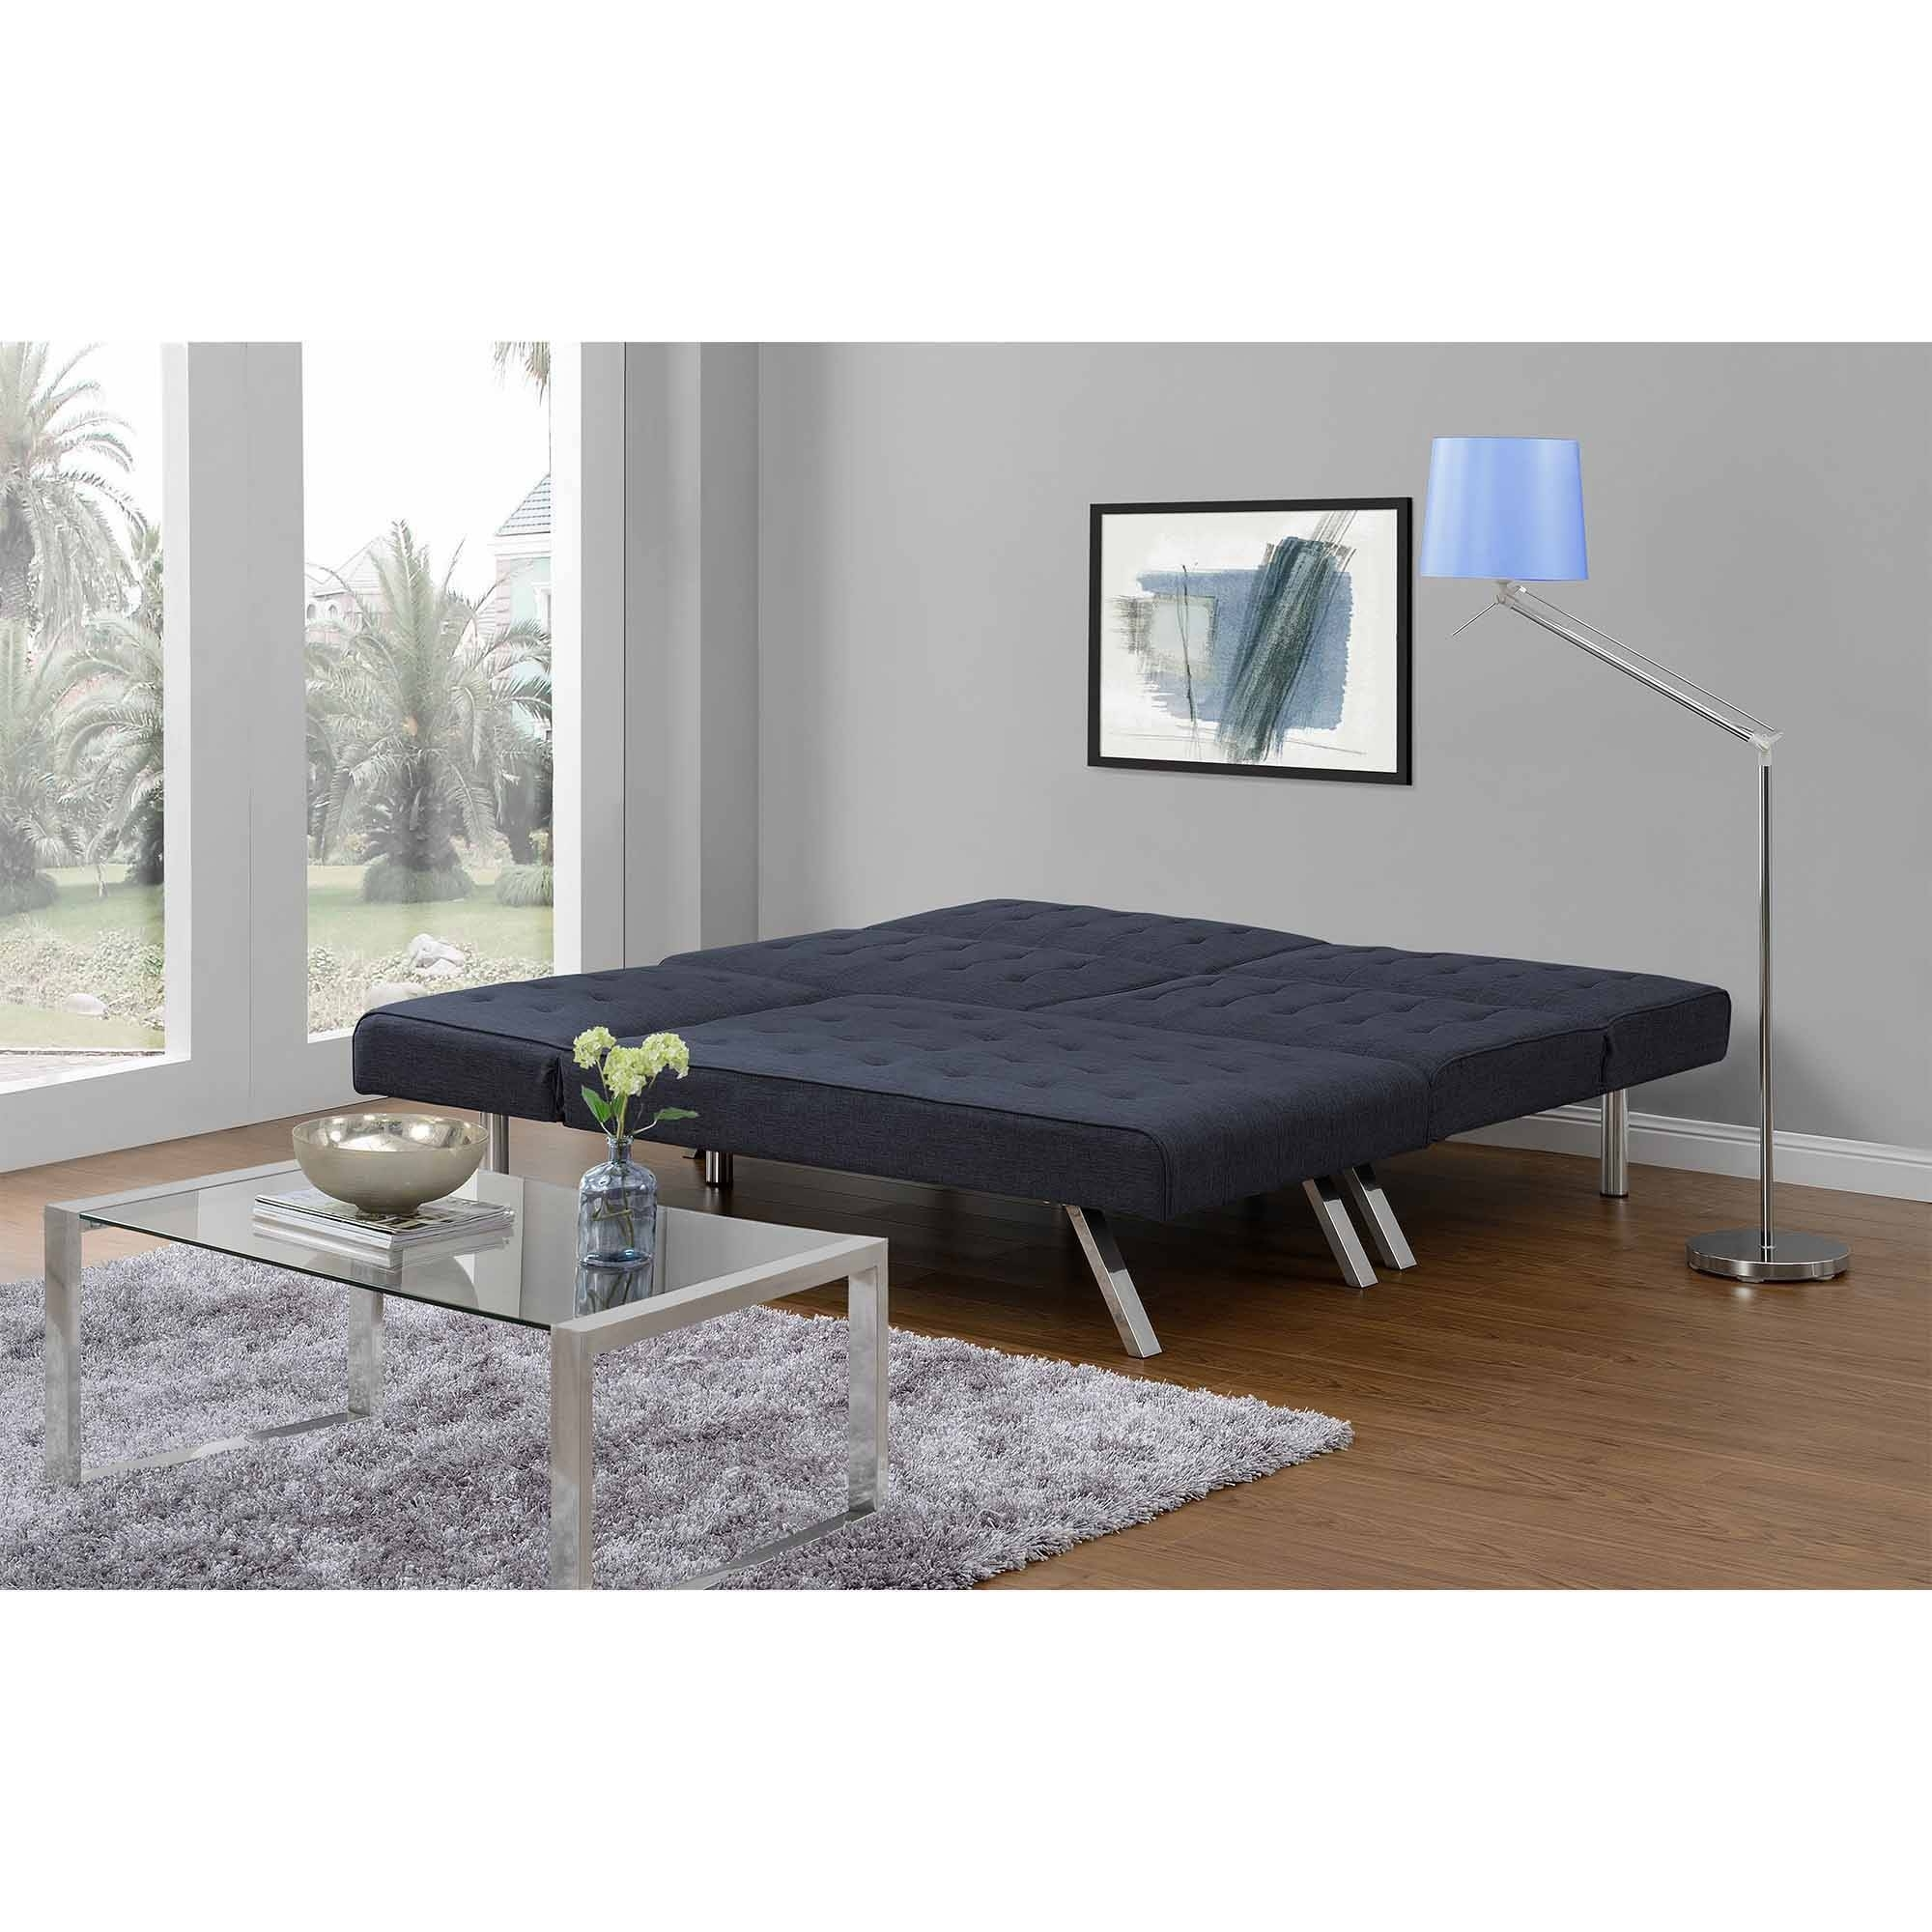 Dhp Emily Futon Chaise Lounger, Multiple Colors – Walmart With Most Current Futon Chaises (View 4 of 15)